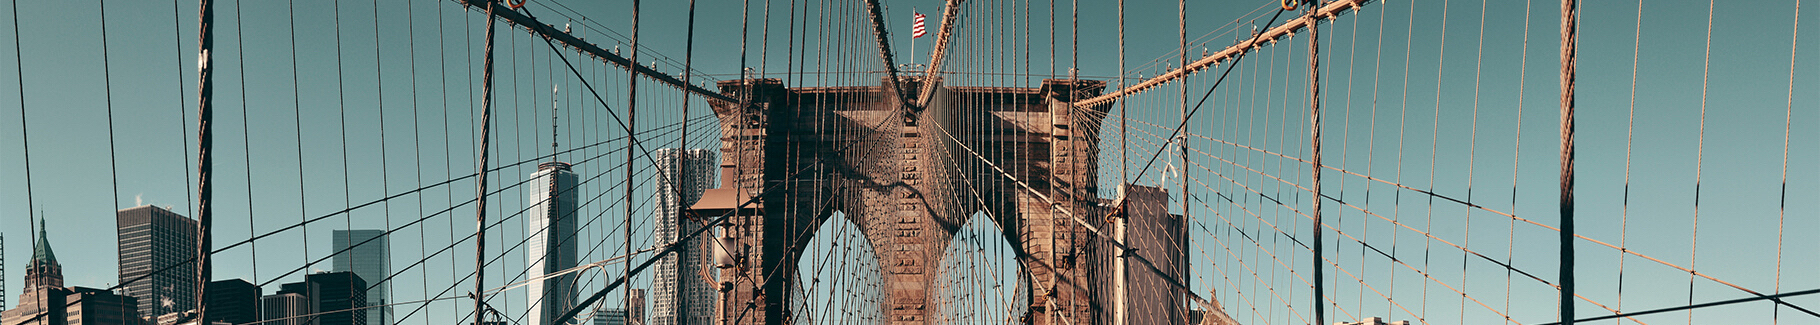 Plakat Brooklyn Bridge latem